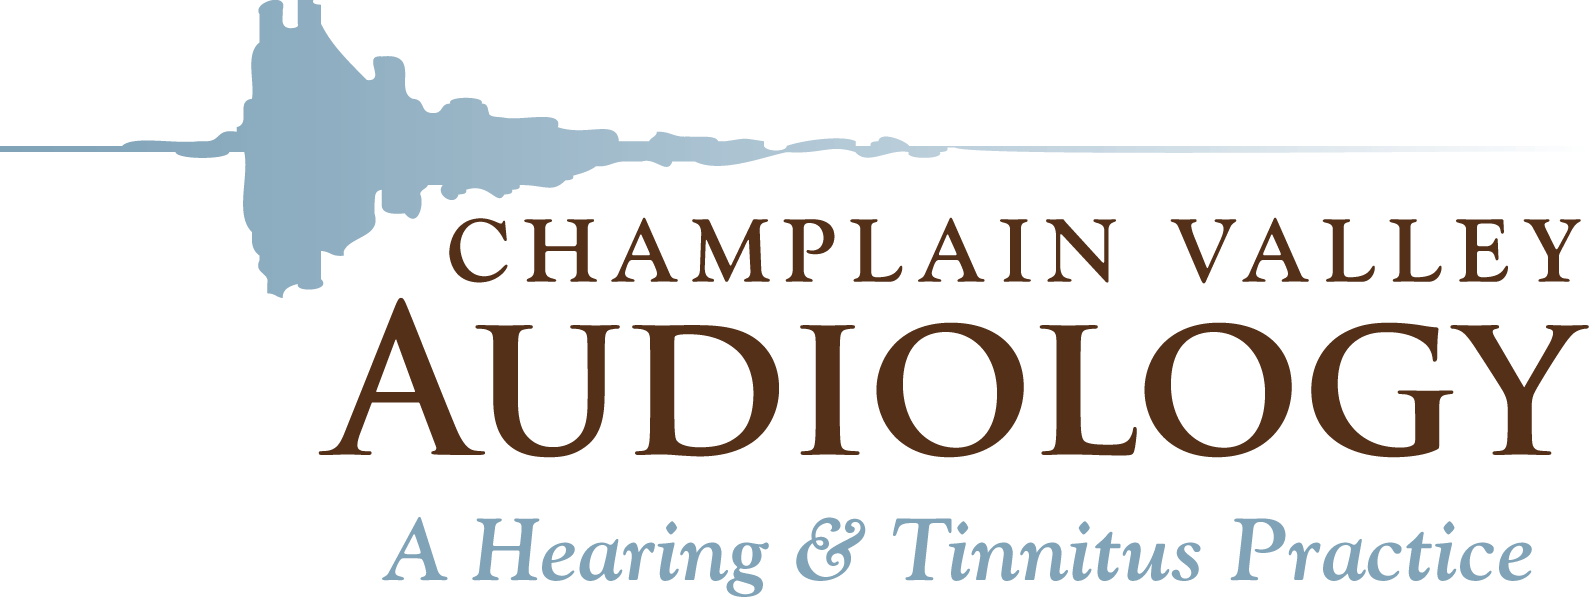 Champlain Valley Audiology Logo